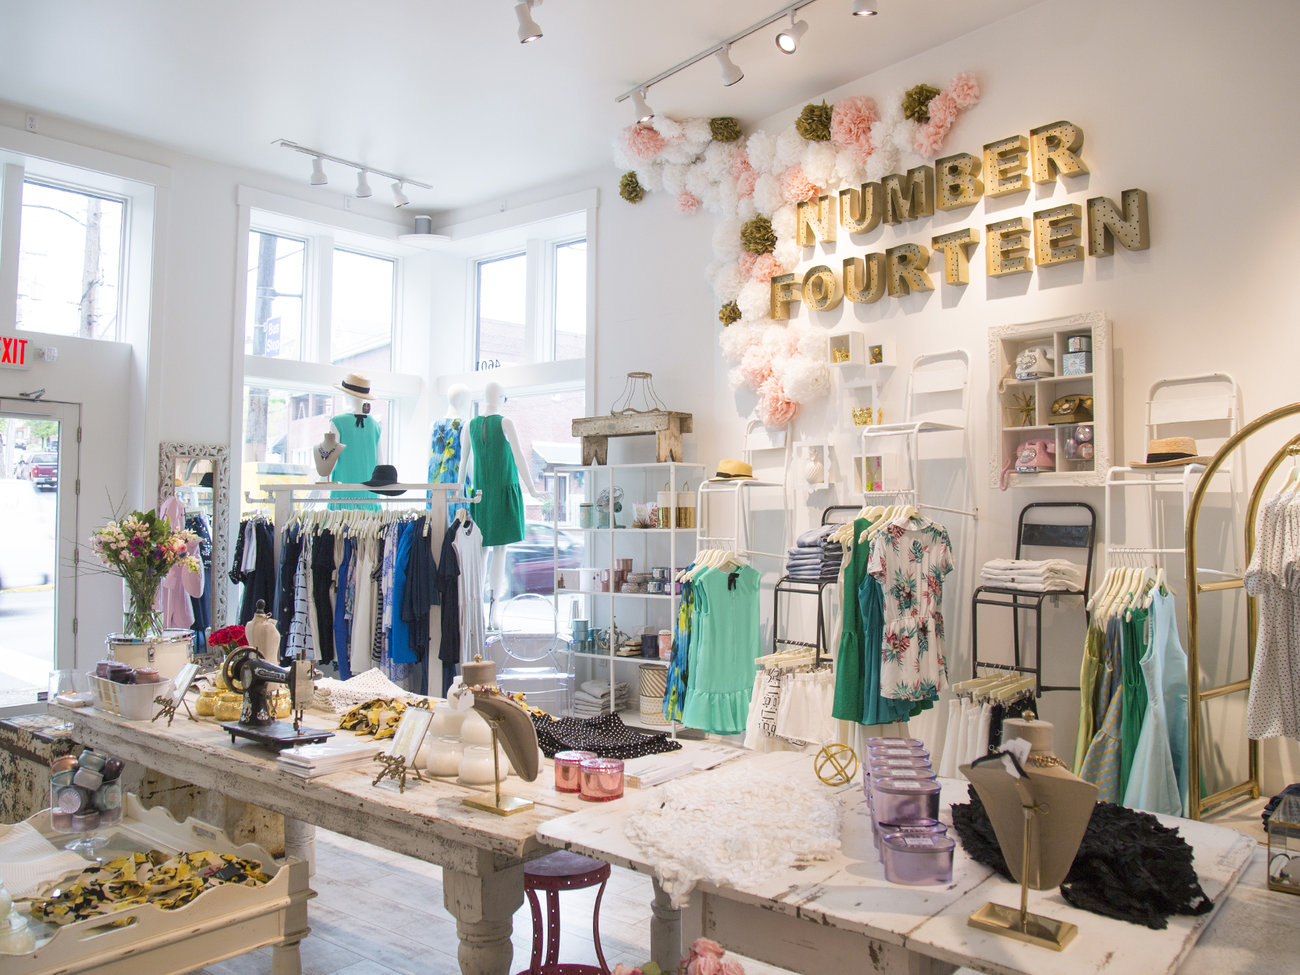 No. 14 Boutique Store in Pittsburgh